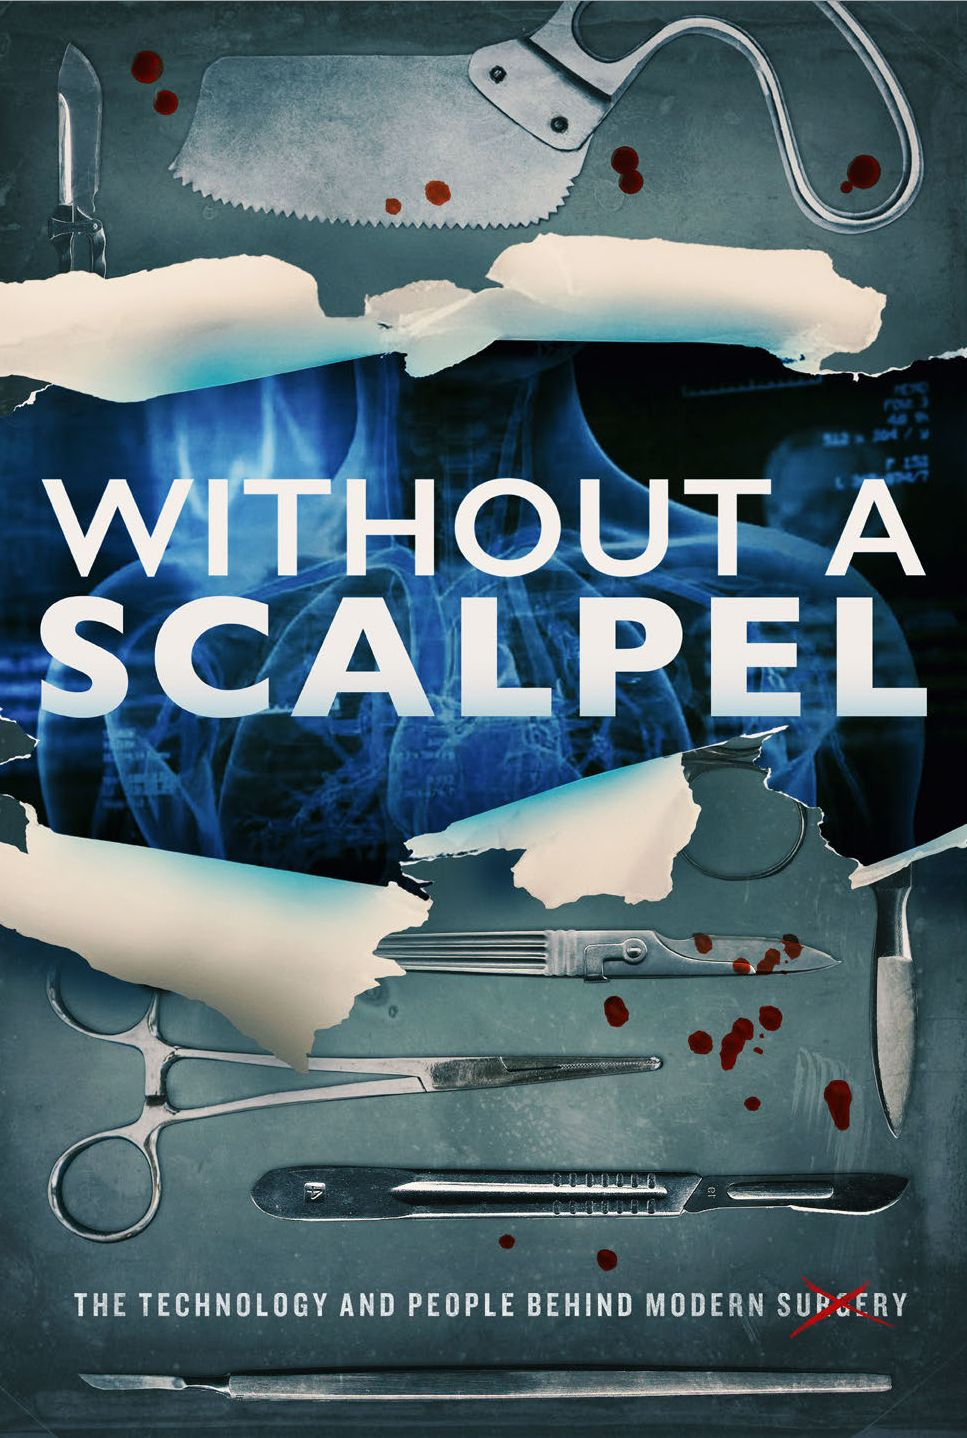 Without a Scalpel Poster Art 2